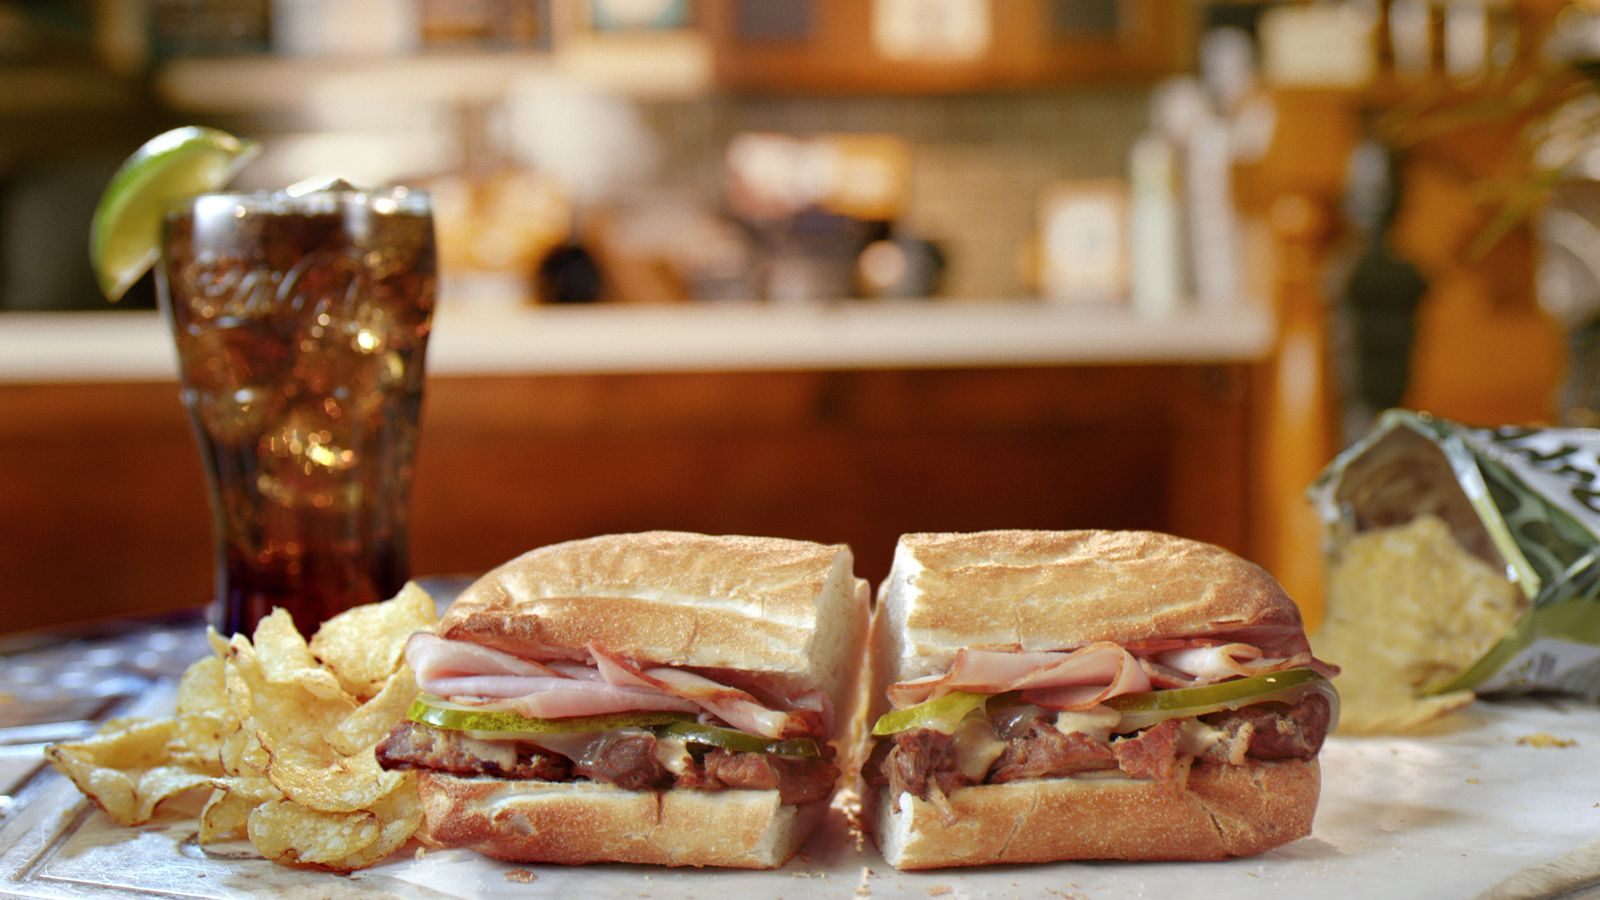 Potbelly Sandwich Shop Introduces New Cuban Sandwich For A Limited Time